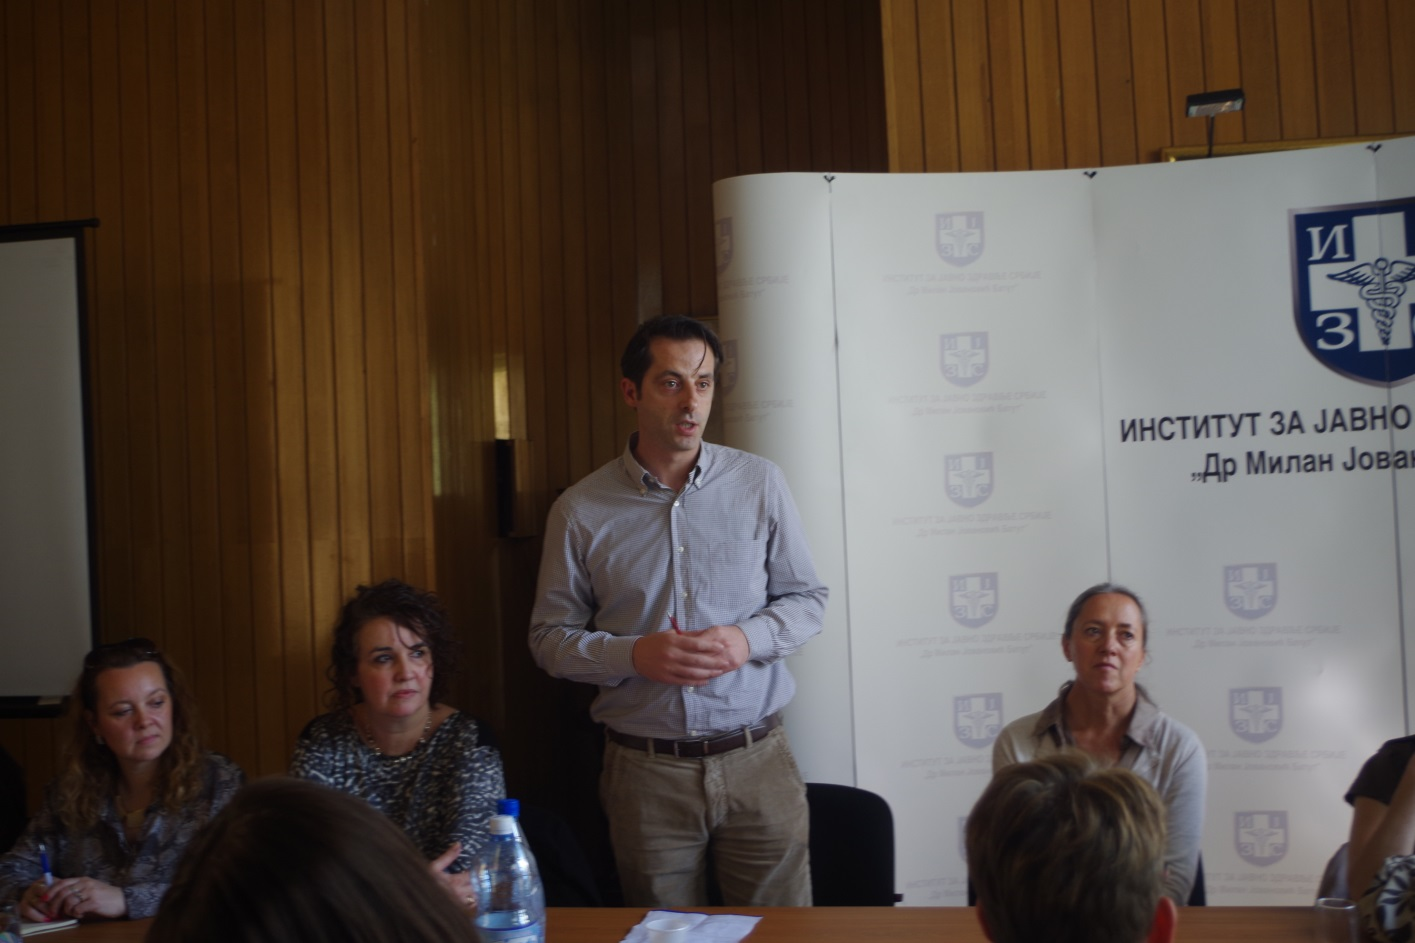 Sustainability of programmes and recurring stock-outs concern the Serbian civil society